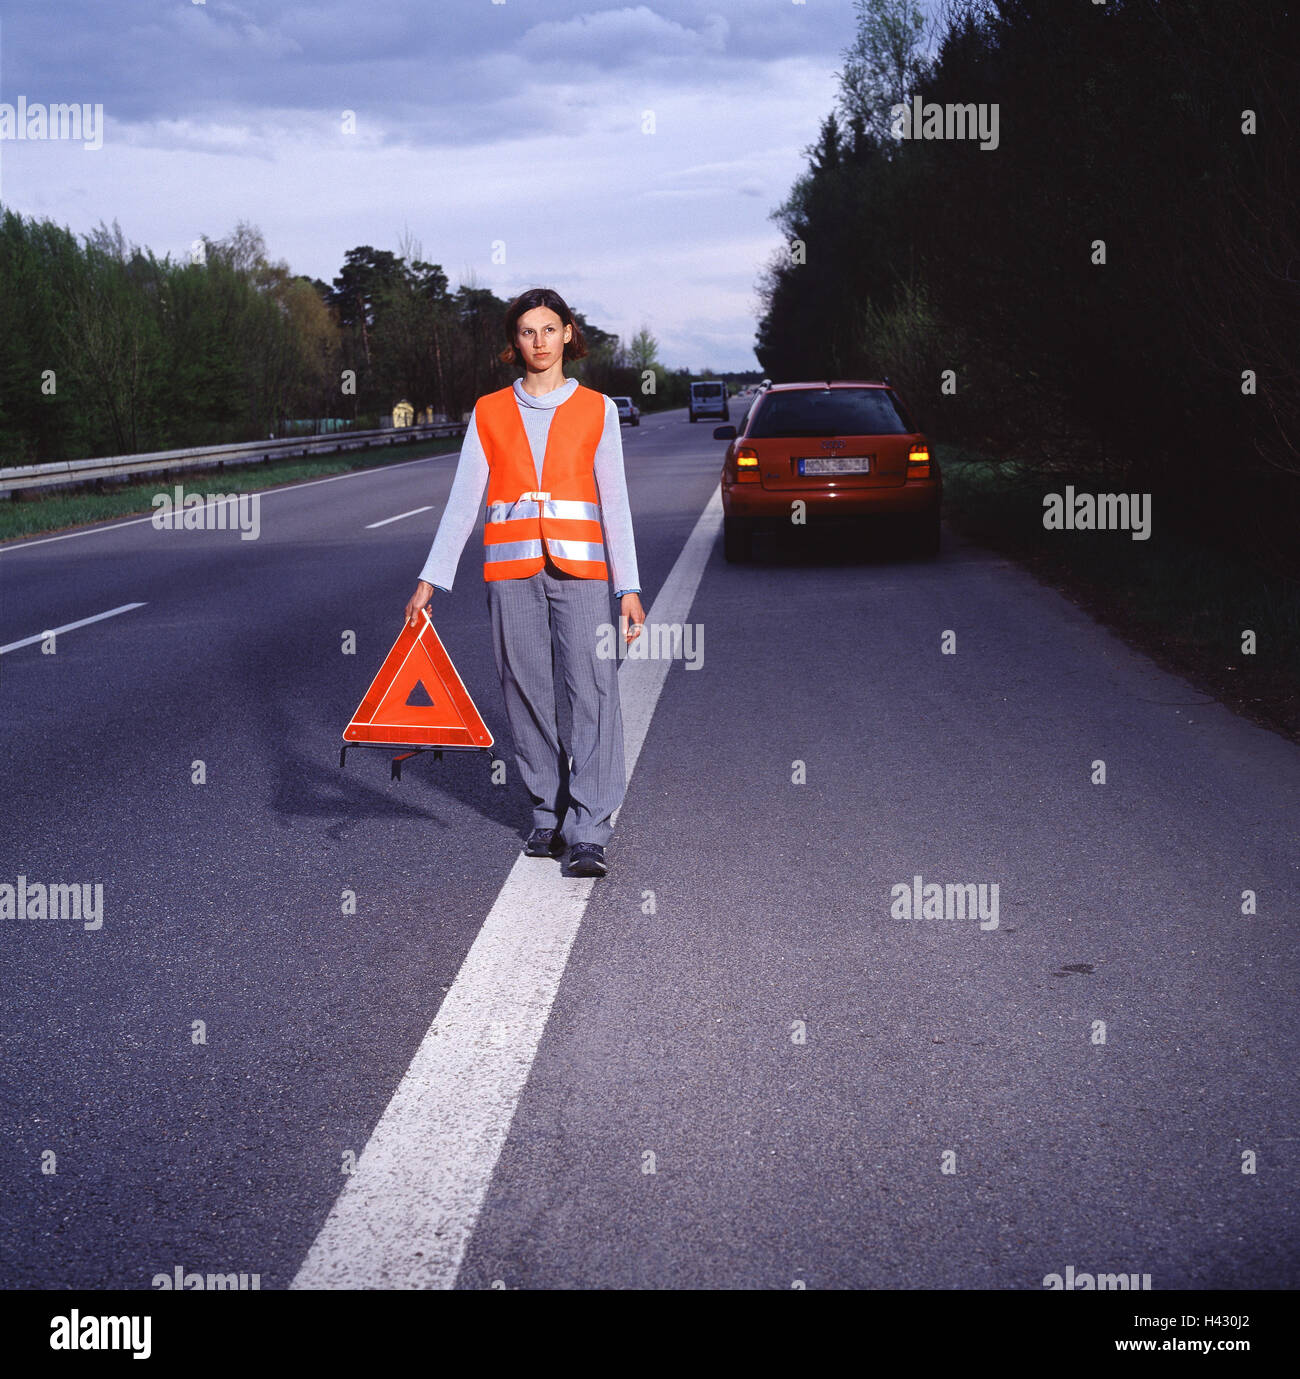 Sicherheitsweste Auto Warnweste Stockfotos And Warnweste Bilder Alamy